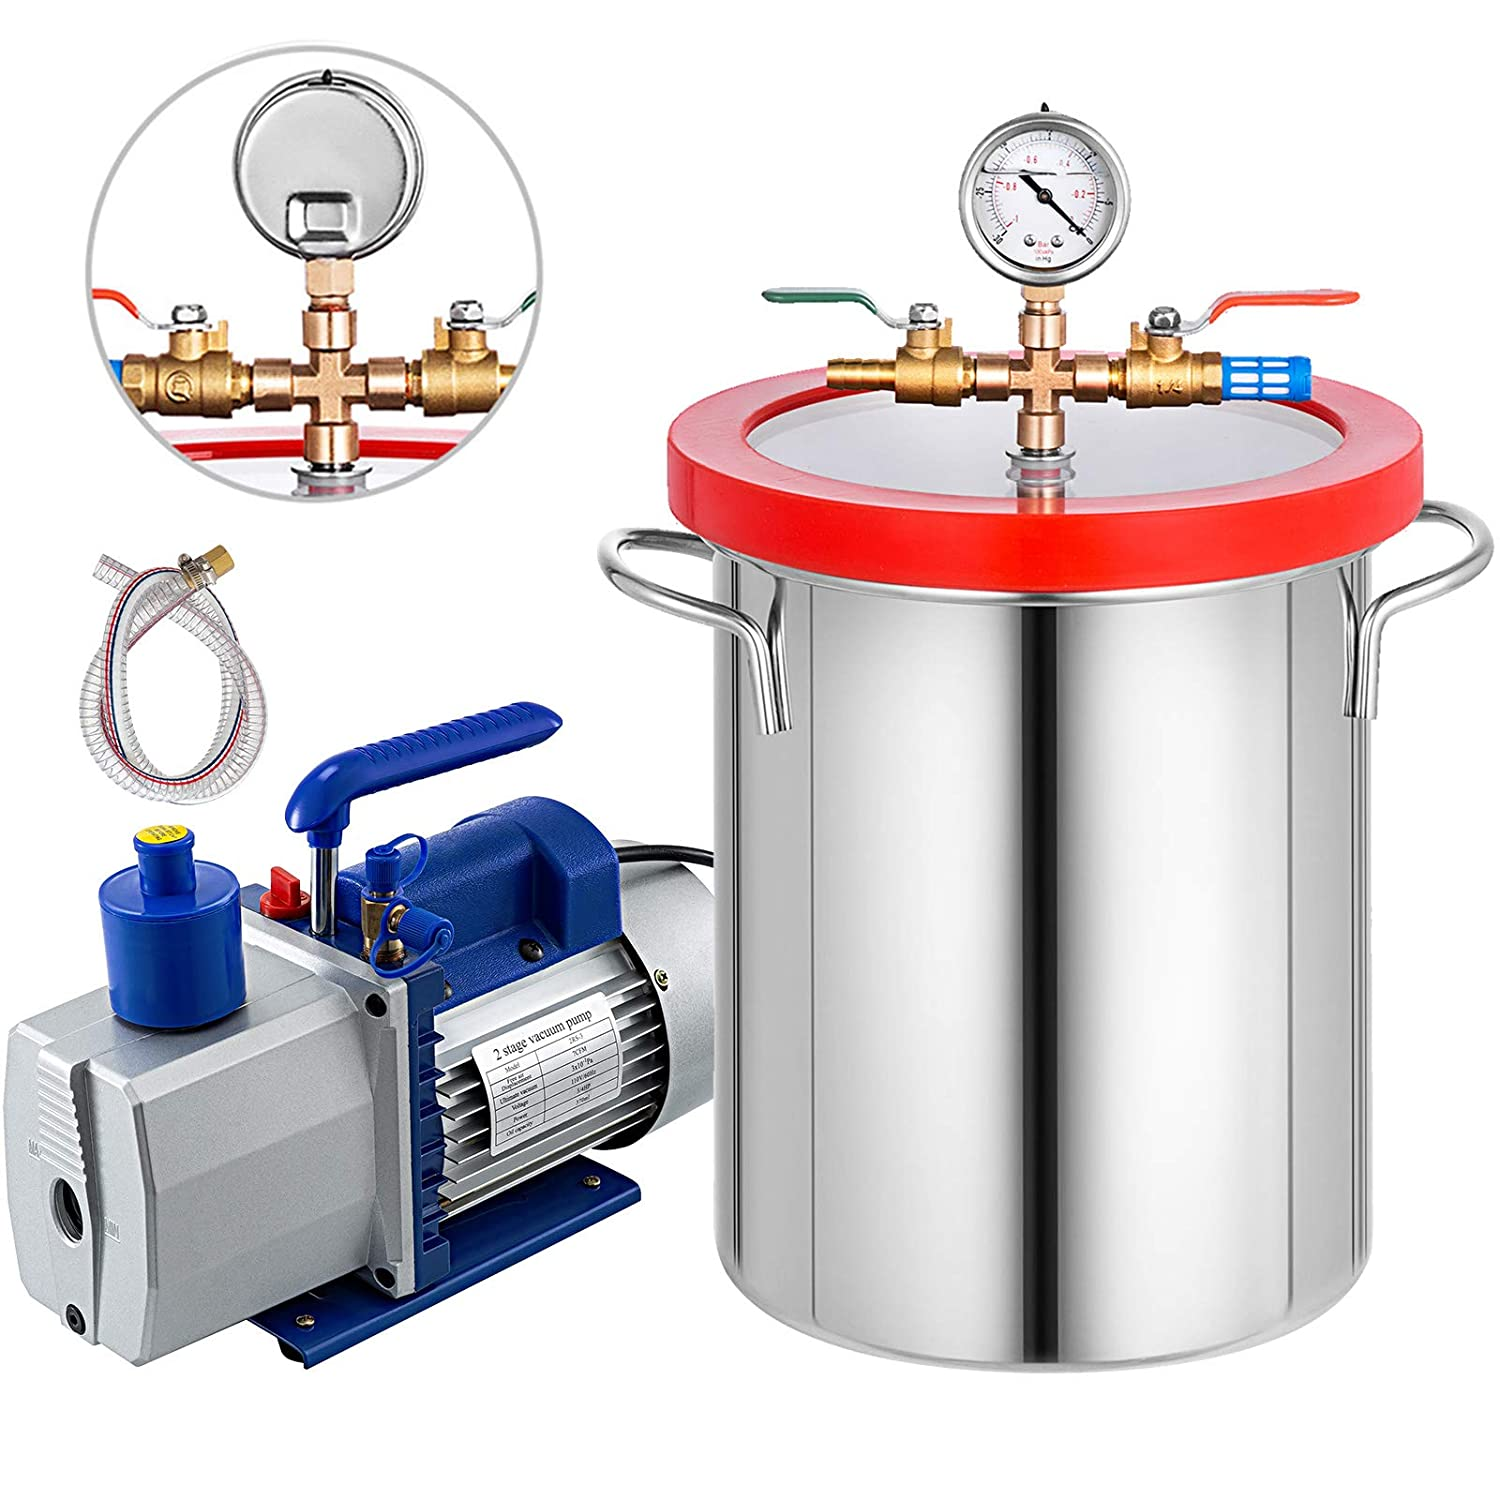 Bestauto 5 Gallon Vacuum Degassing Chamber Kit Stainless Steel with 2 Stage 7CFM 1/2 HP Vacuum Pump